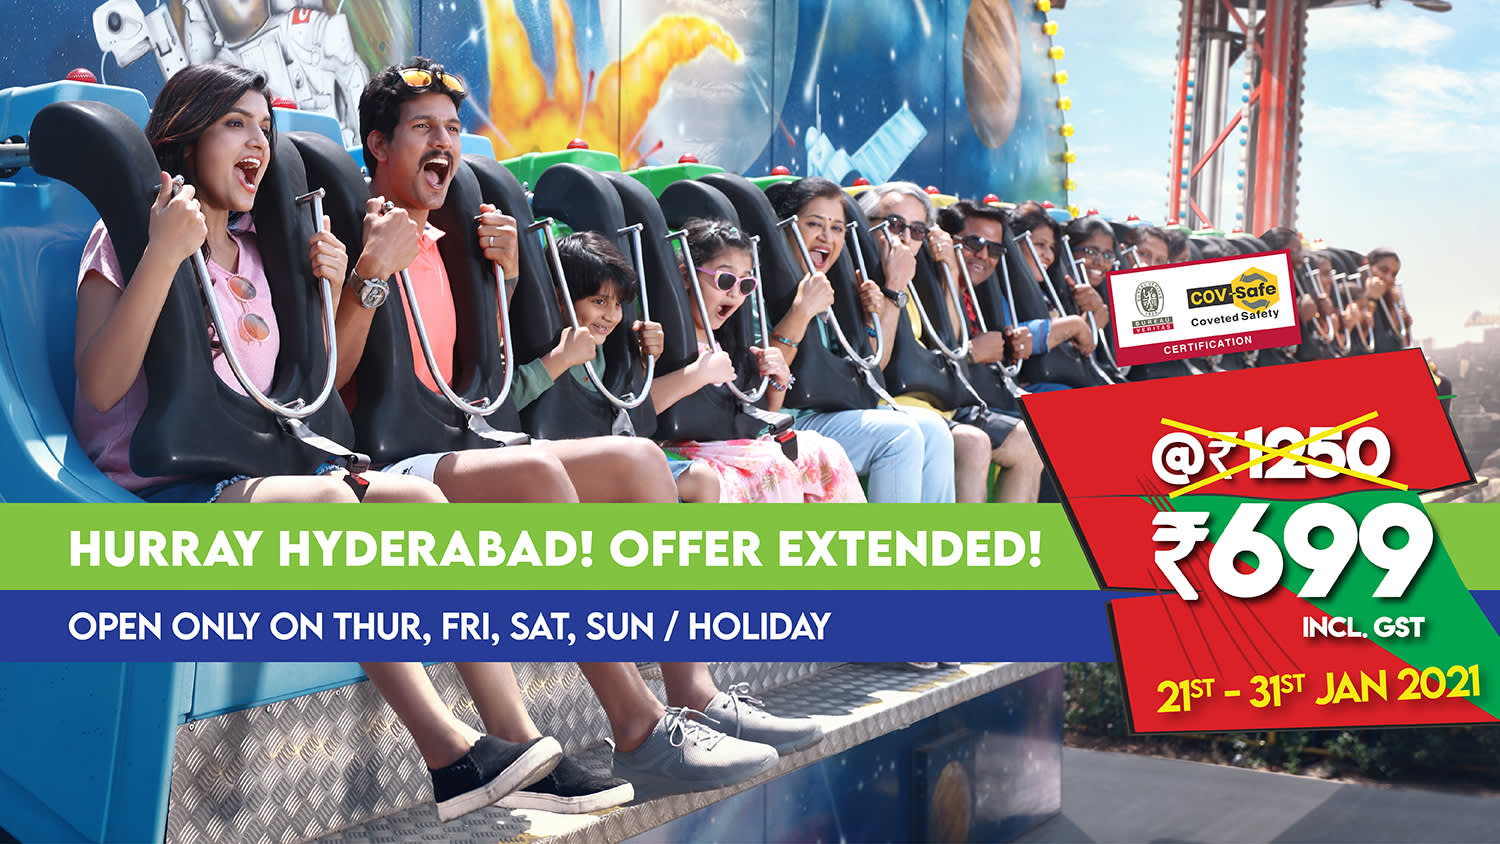 Wonderla - Hyderabad - Offer Extended Banner - w1500 x h844 px-01 p1vqfw